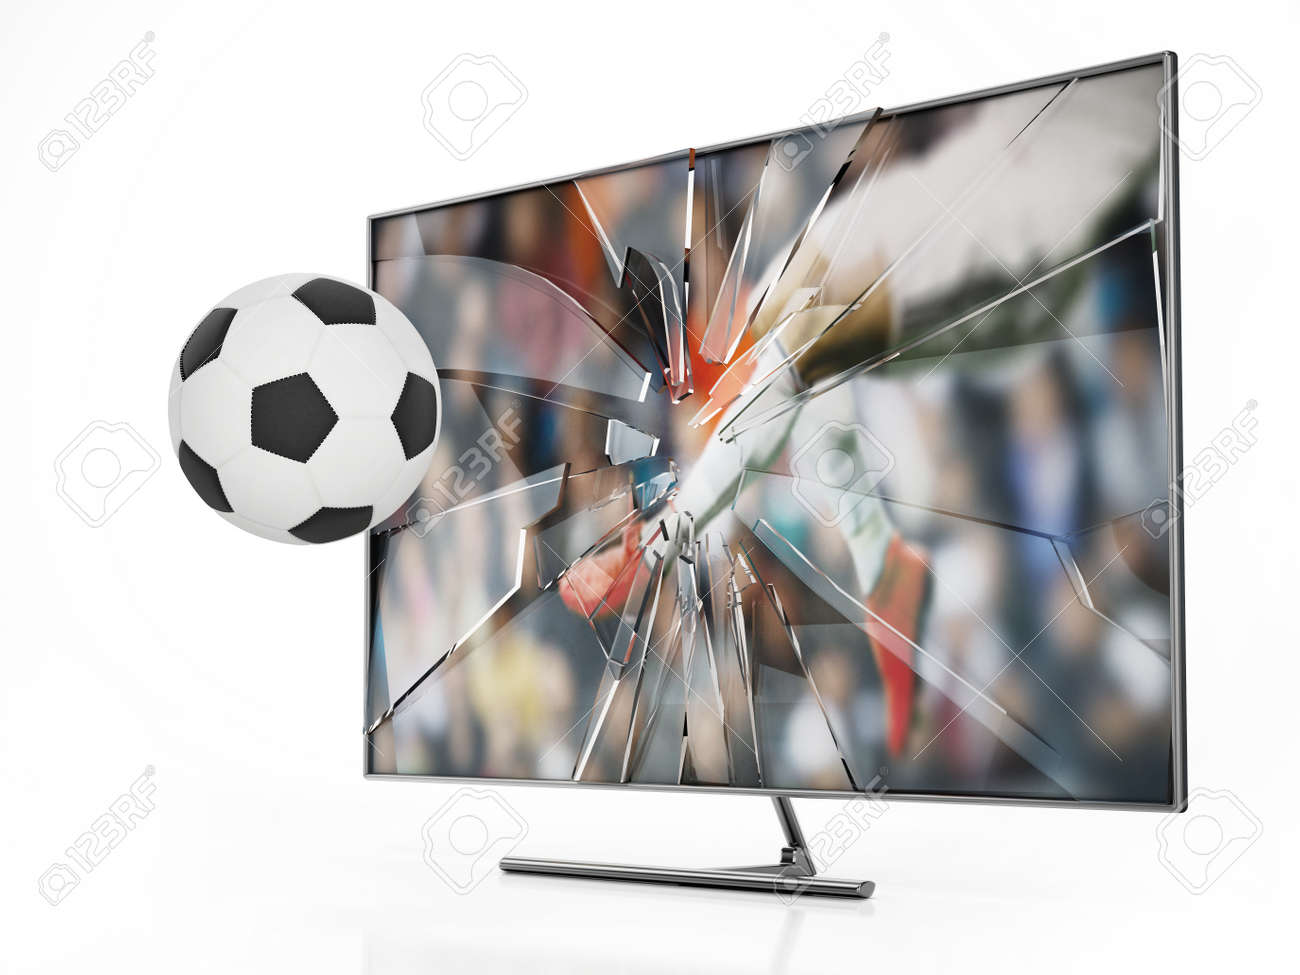 Soccer ball floating out of LCD TV with shattered screen. 3D illustration. - 173111188